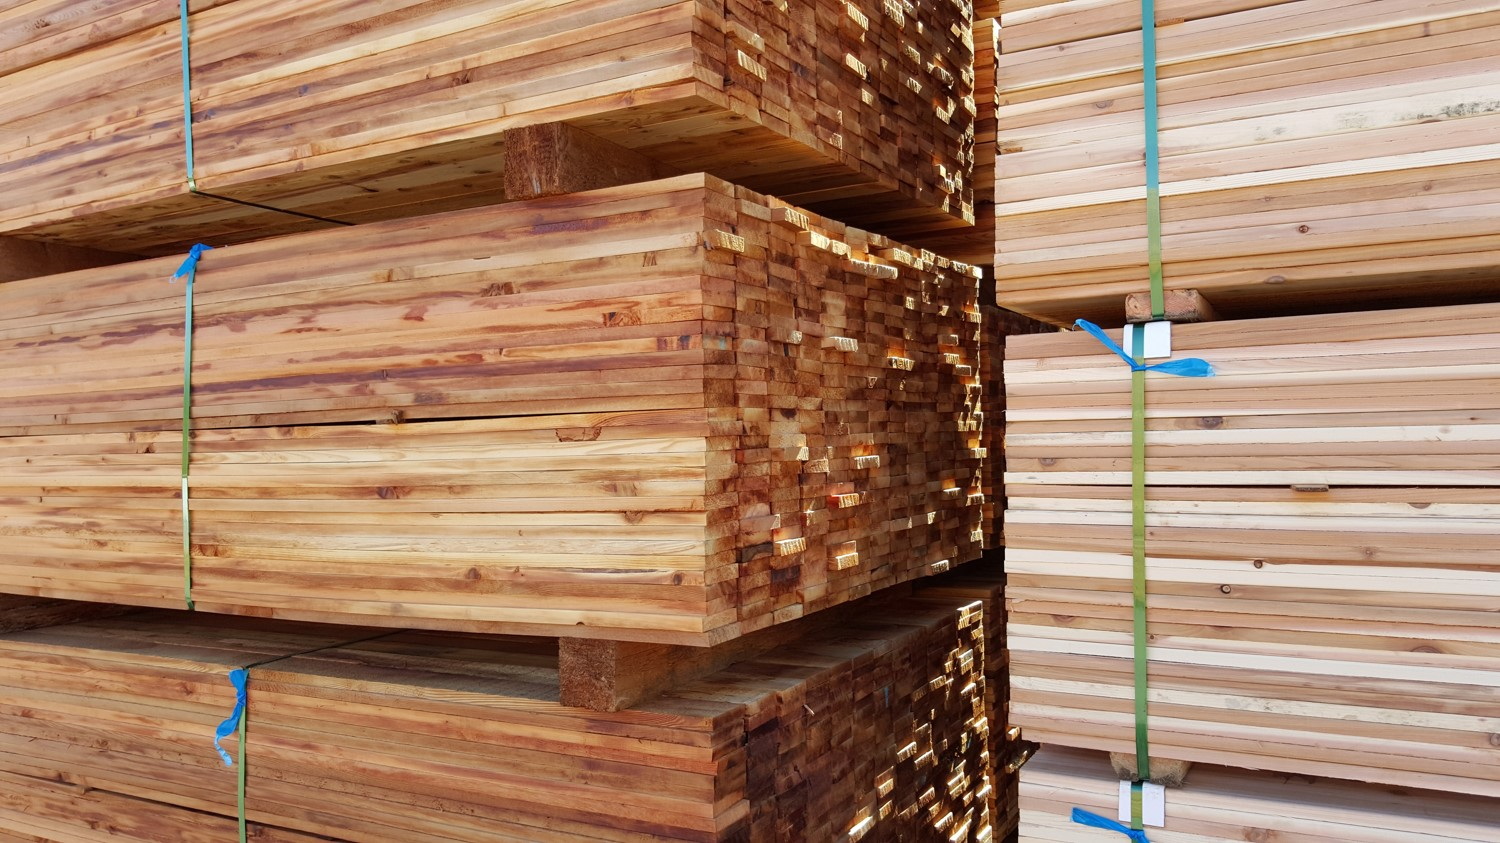 Wholesale Cedar Products - Lumber, Siding, Hip and Ridge Caps, Shakes and Shingles